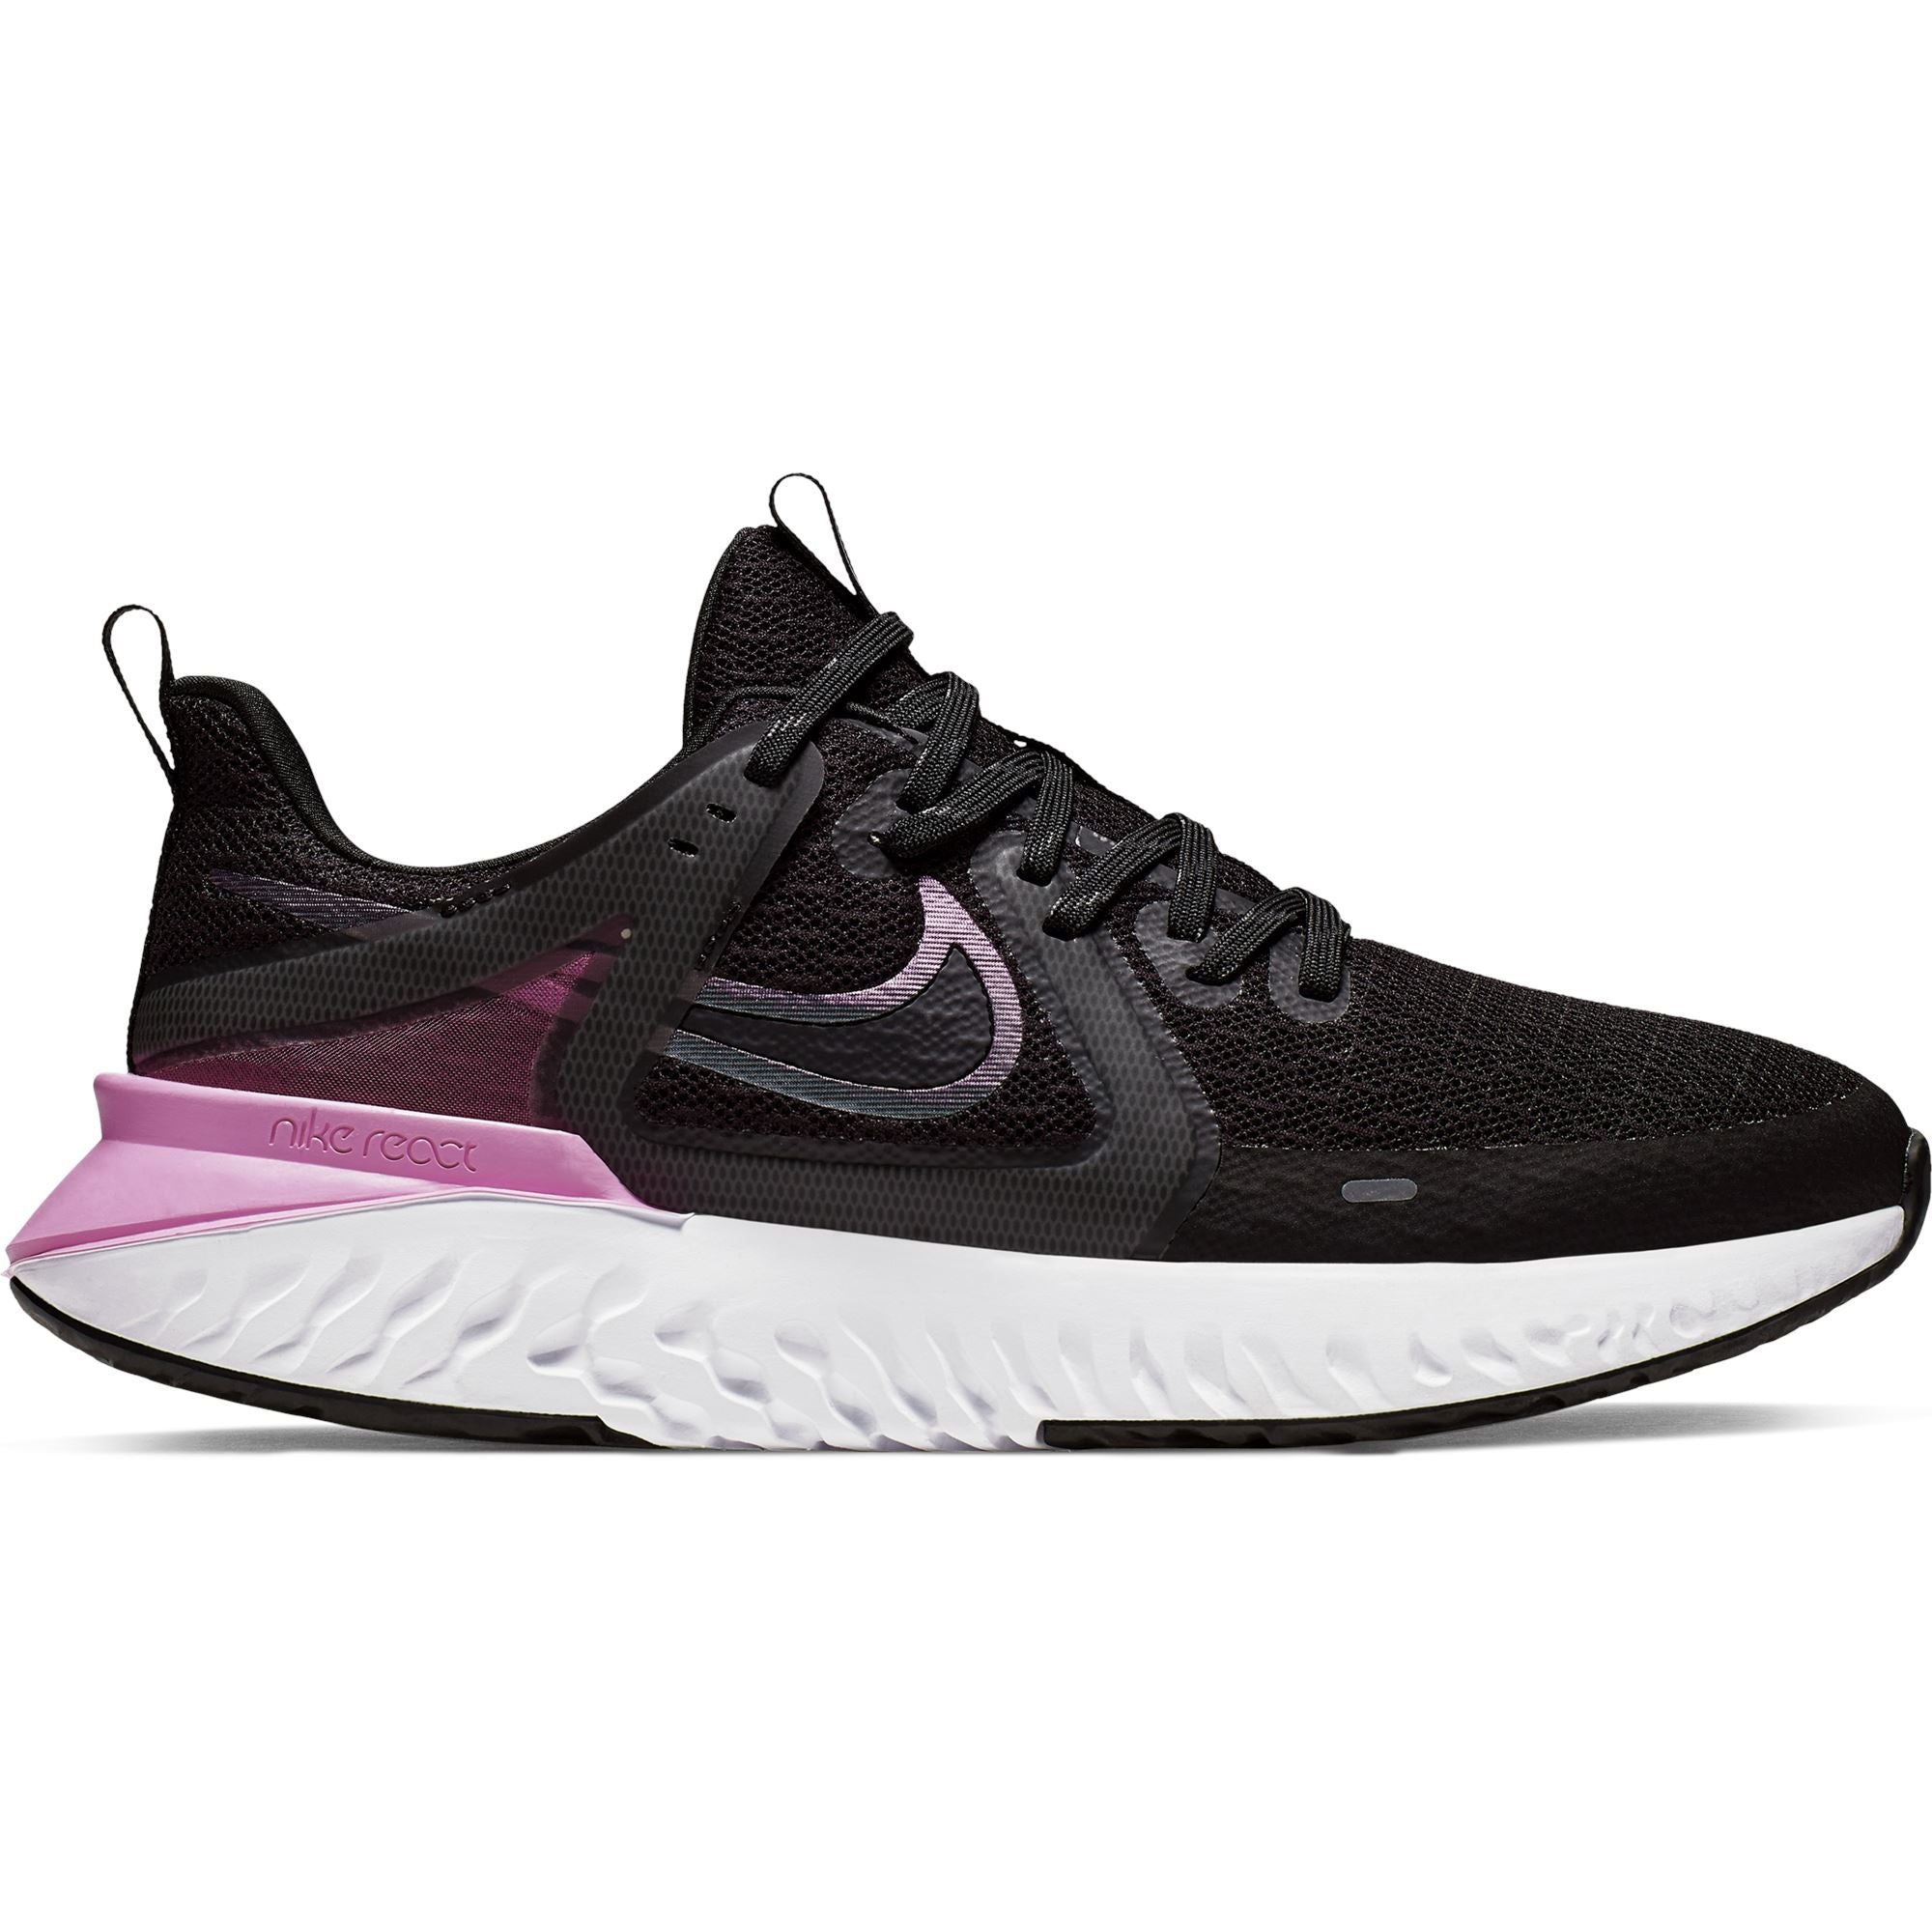 Nike Womens Legend React 2 - Black/Cool Grey-Psychic Pink-White Q3NIKE Nike